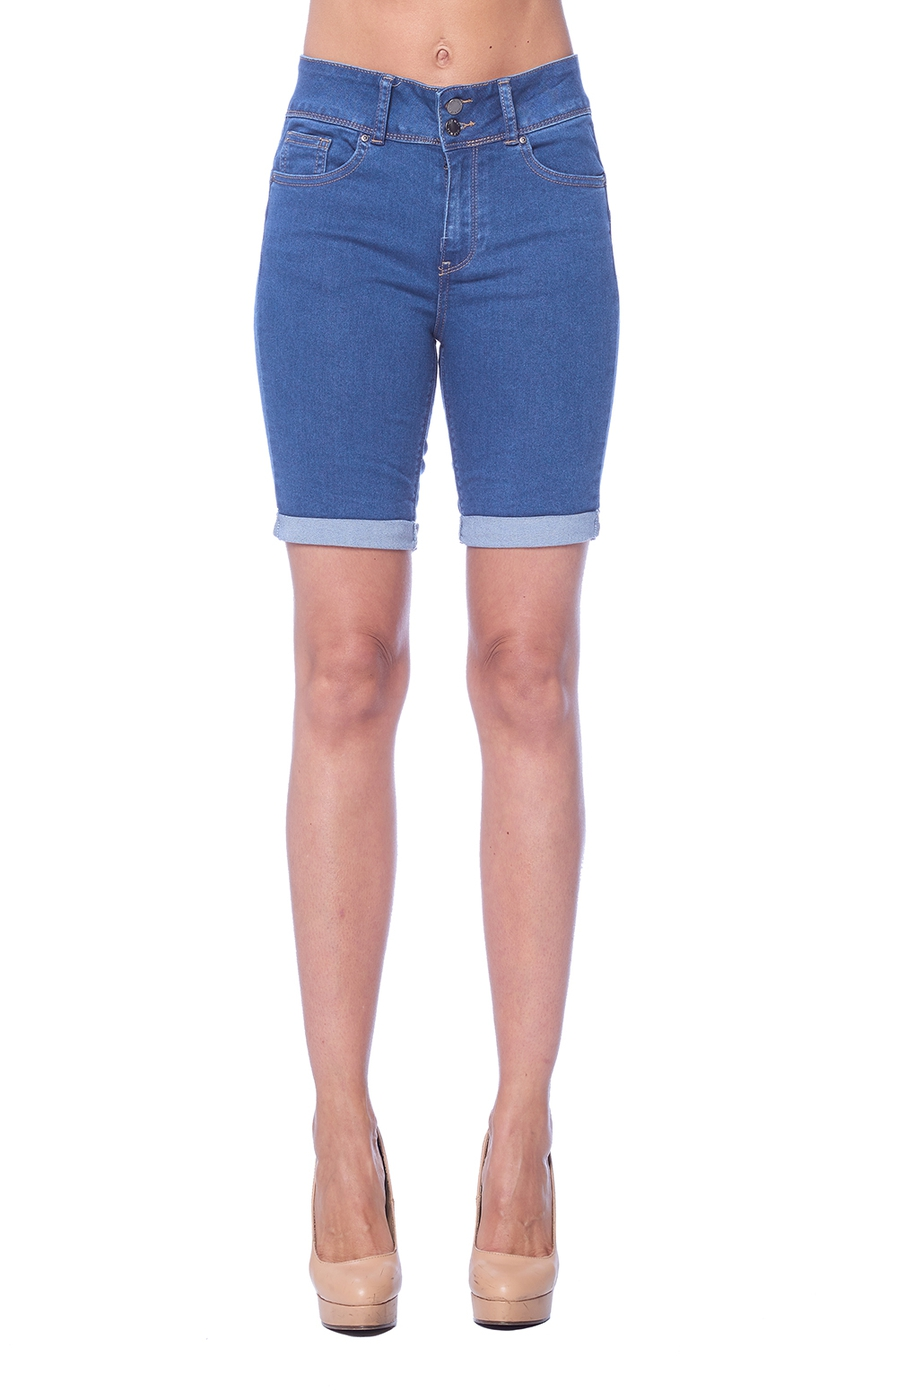 DENIM SHORTS FOR WOMEN - orangeshine.com